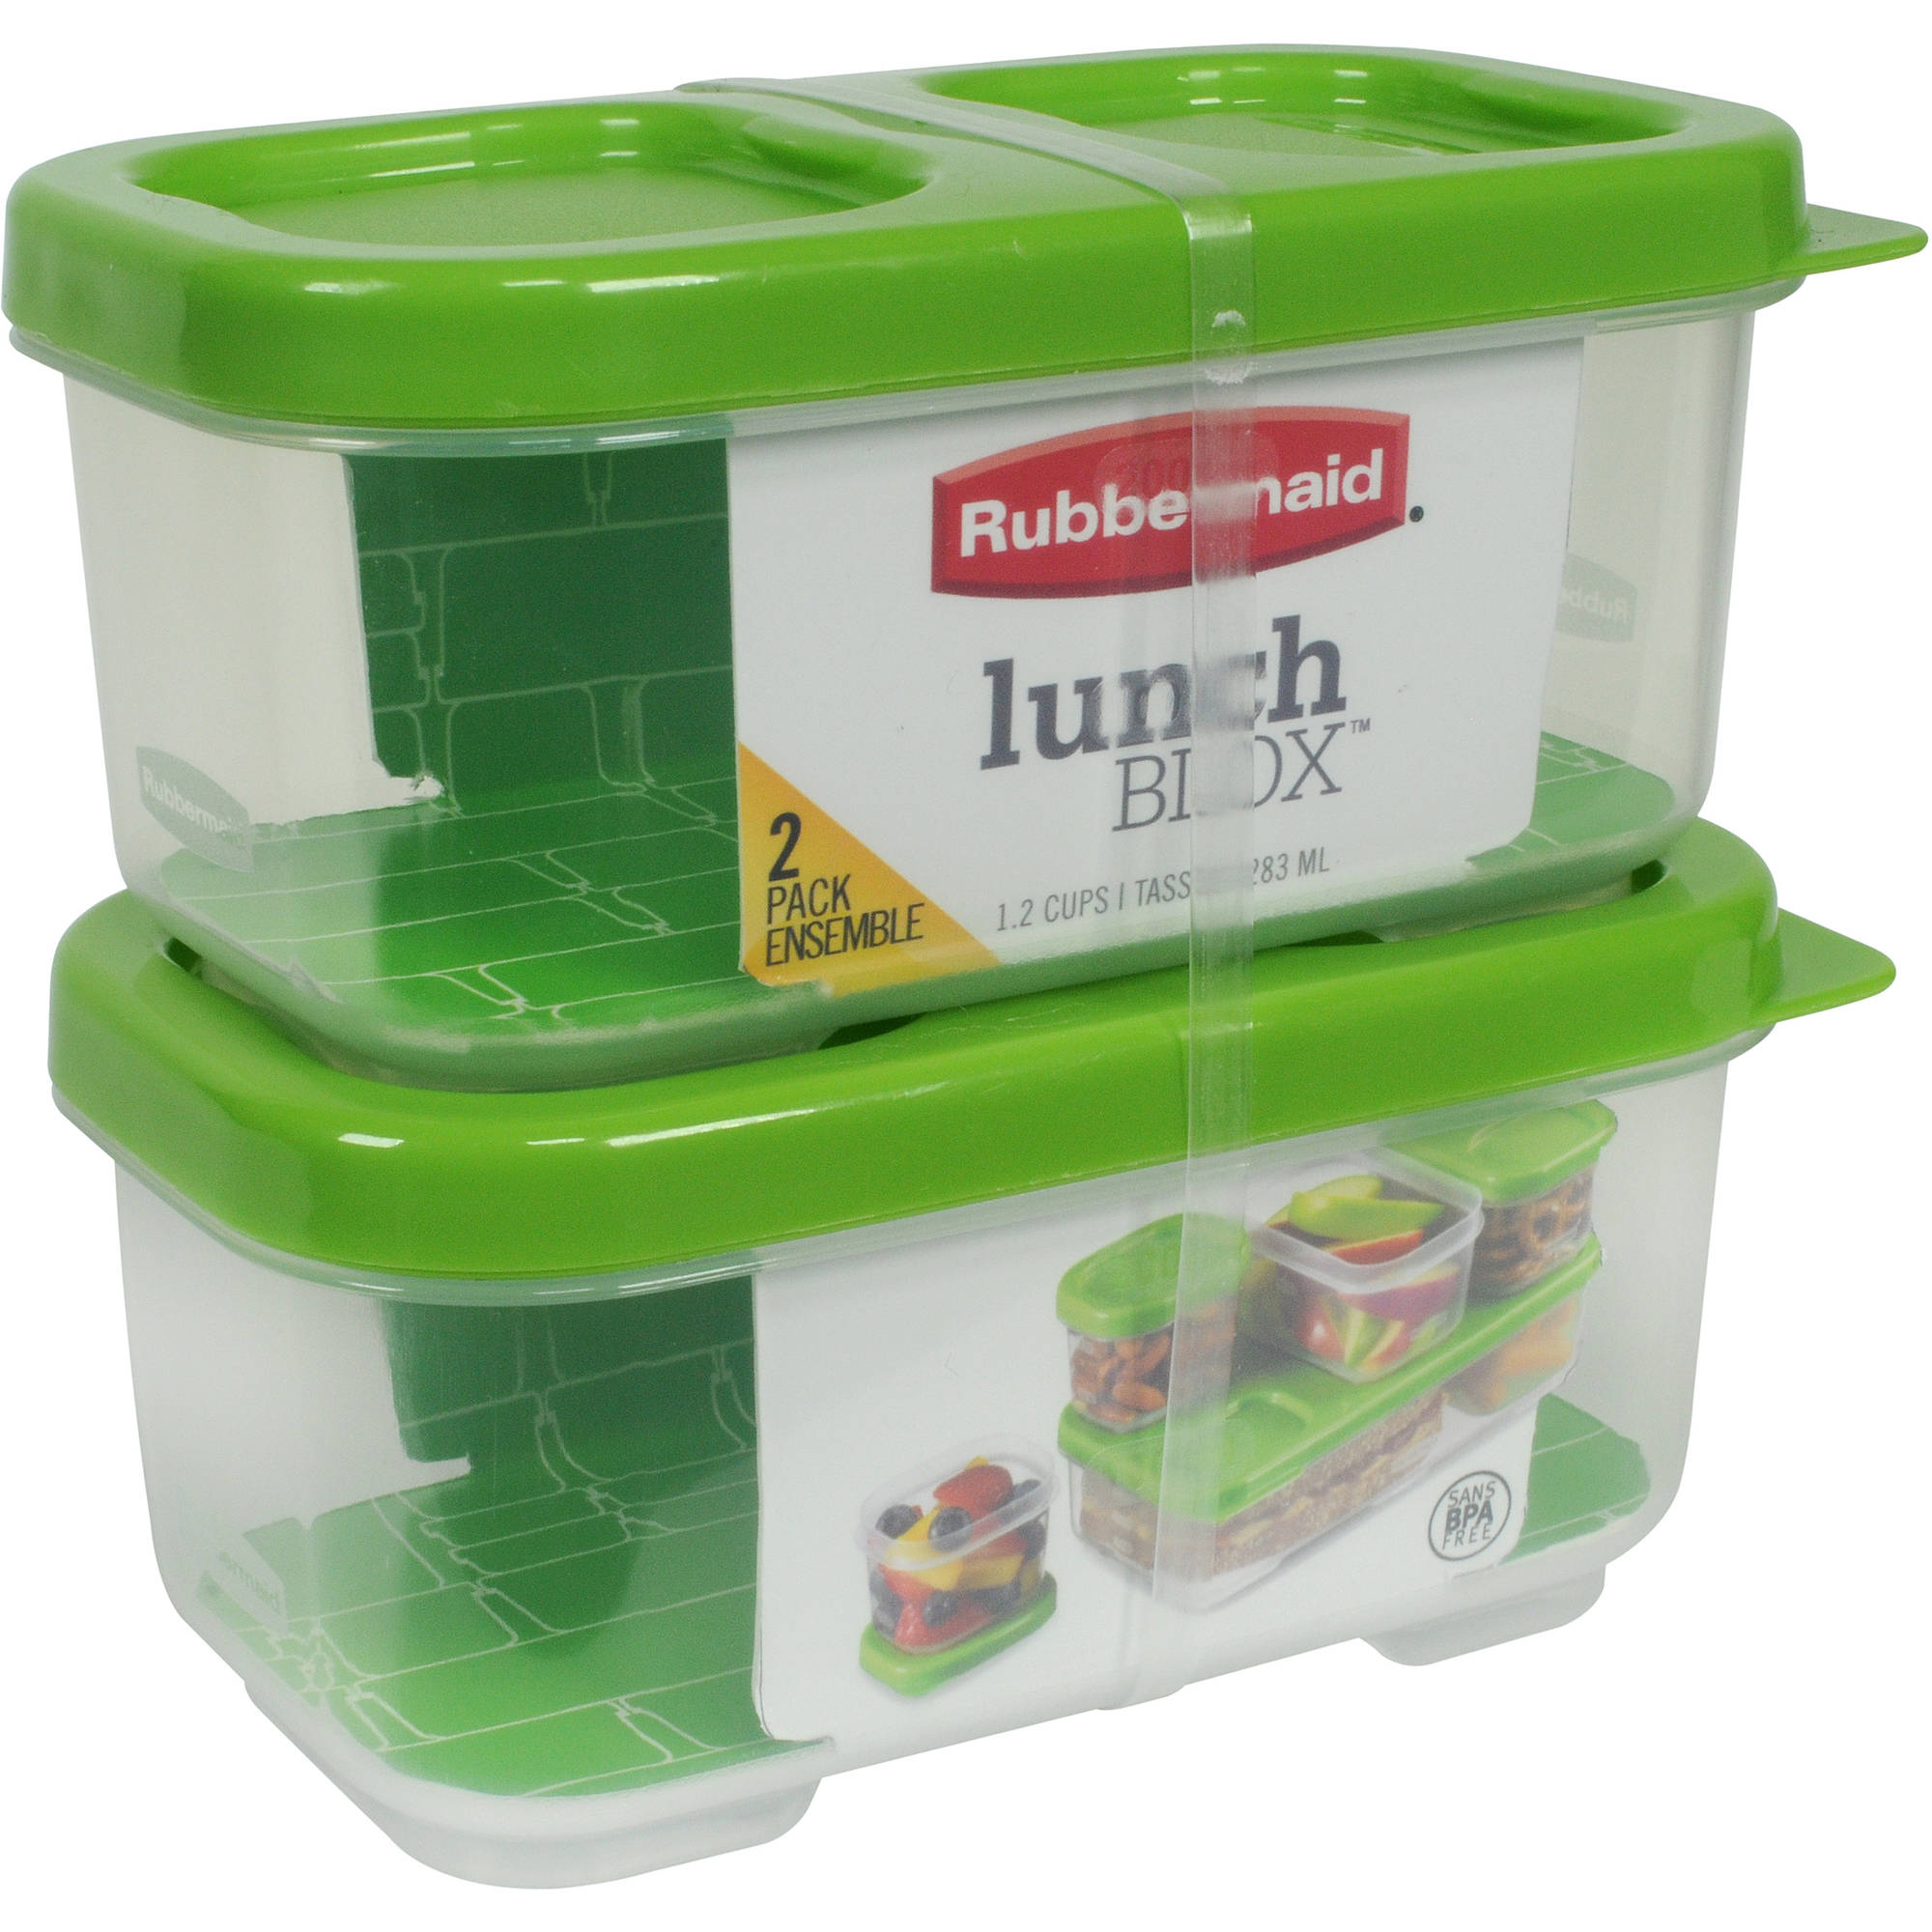 Rubbermaid LunchBlox Side Dish Food Storage Containers, 12-pack